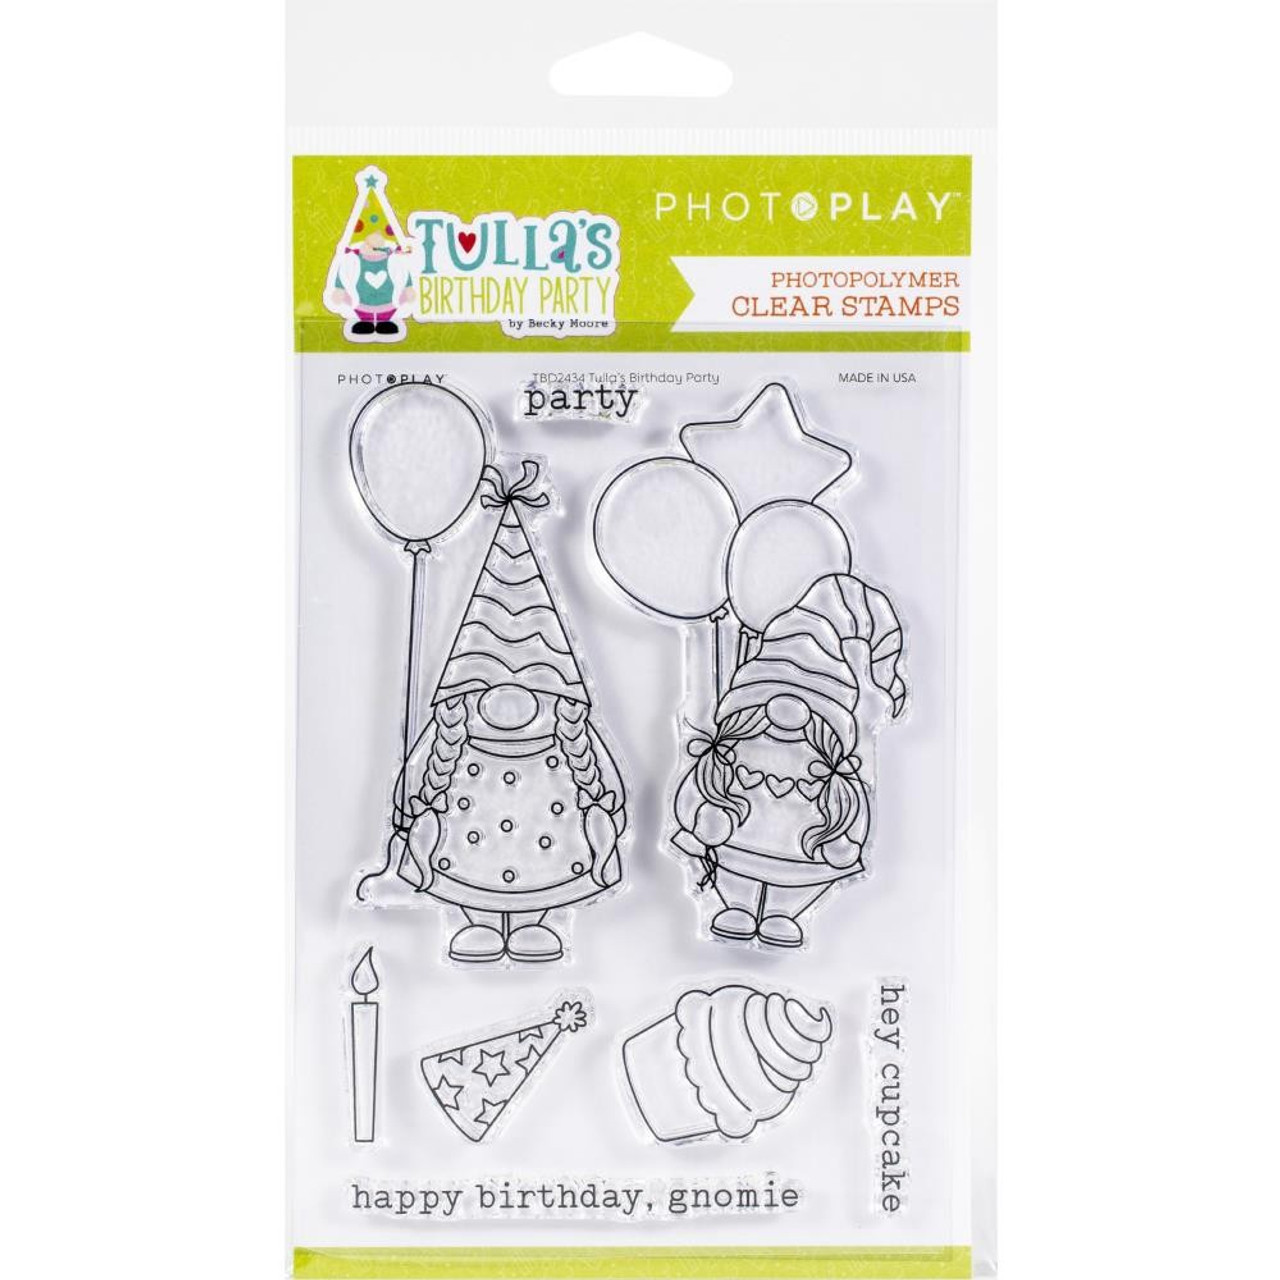 Photoplay - Clear Stamps - Tulia's Birthday